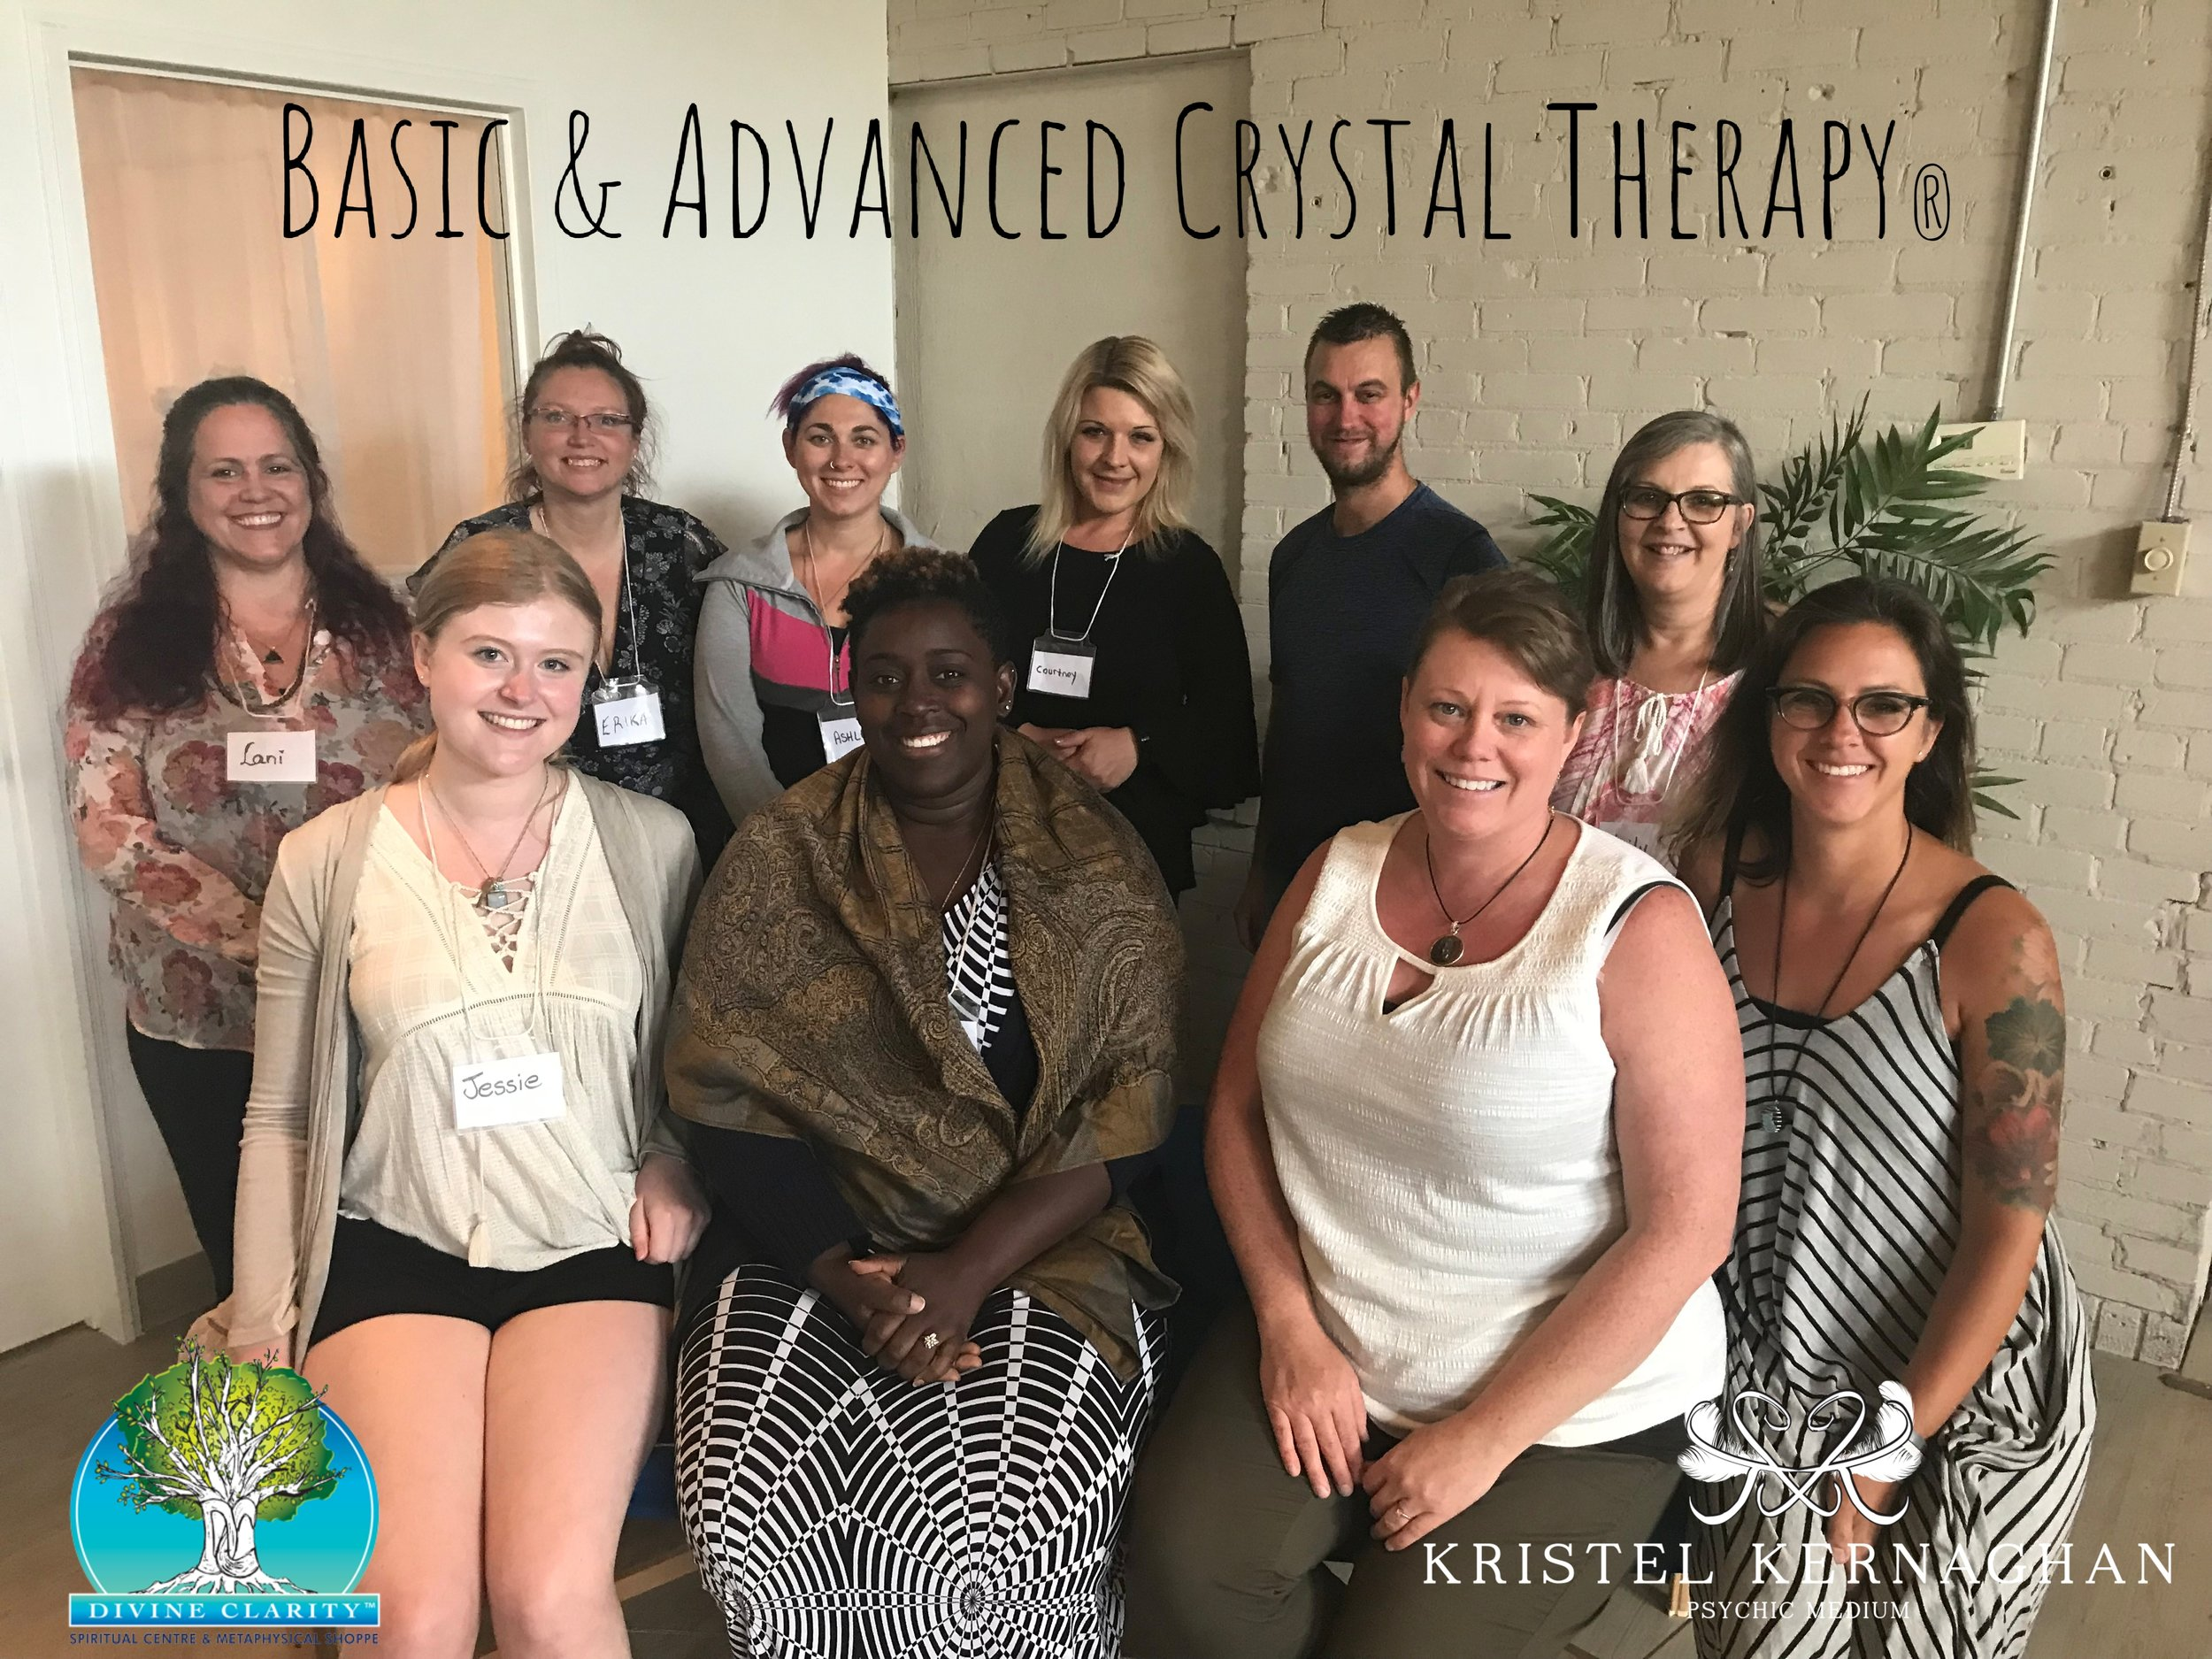 Basic & Advanced Crystal Therapy Class Photo.jpg